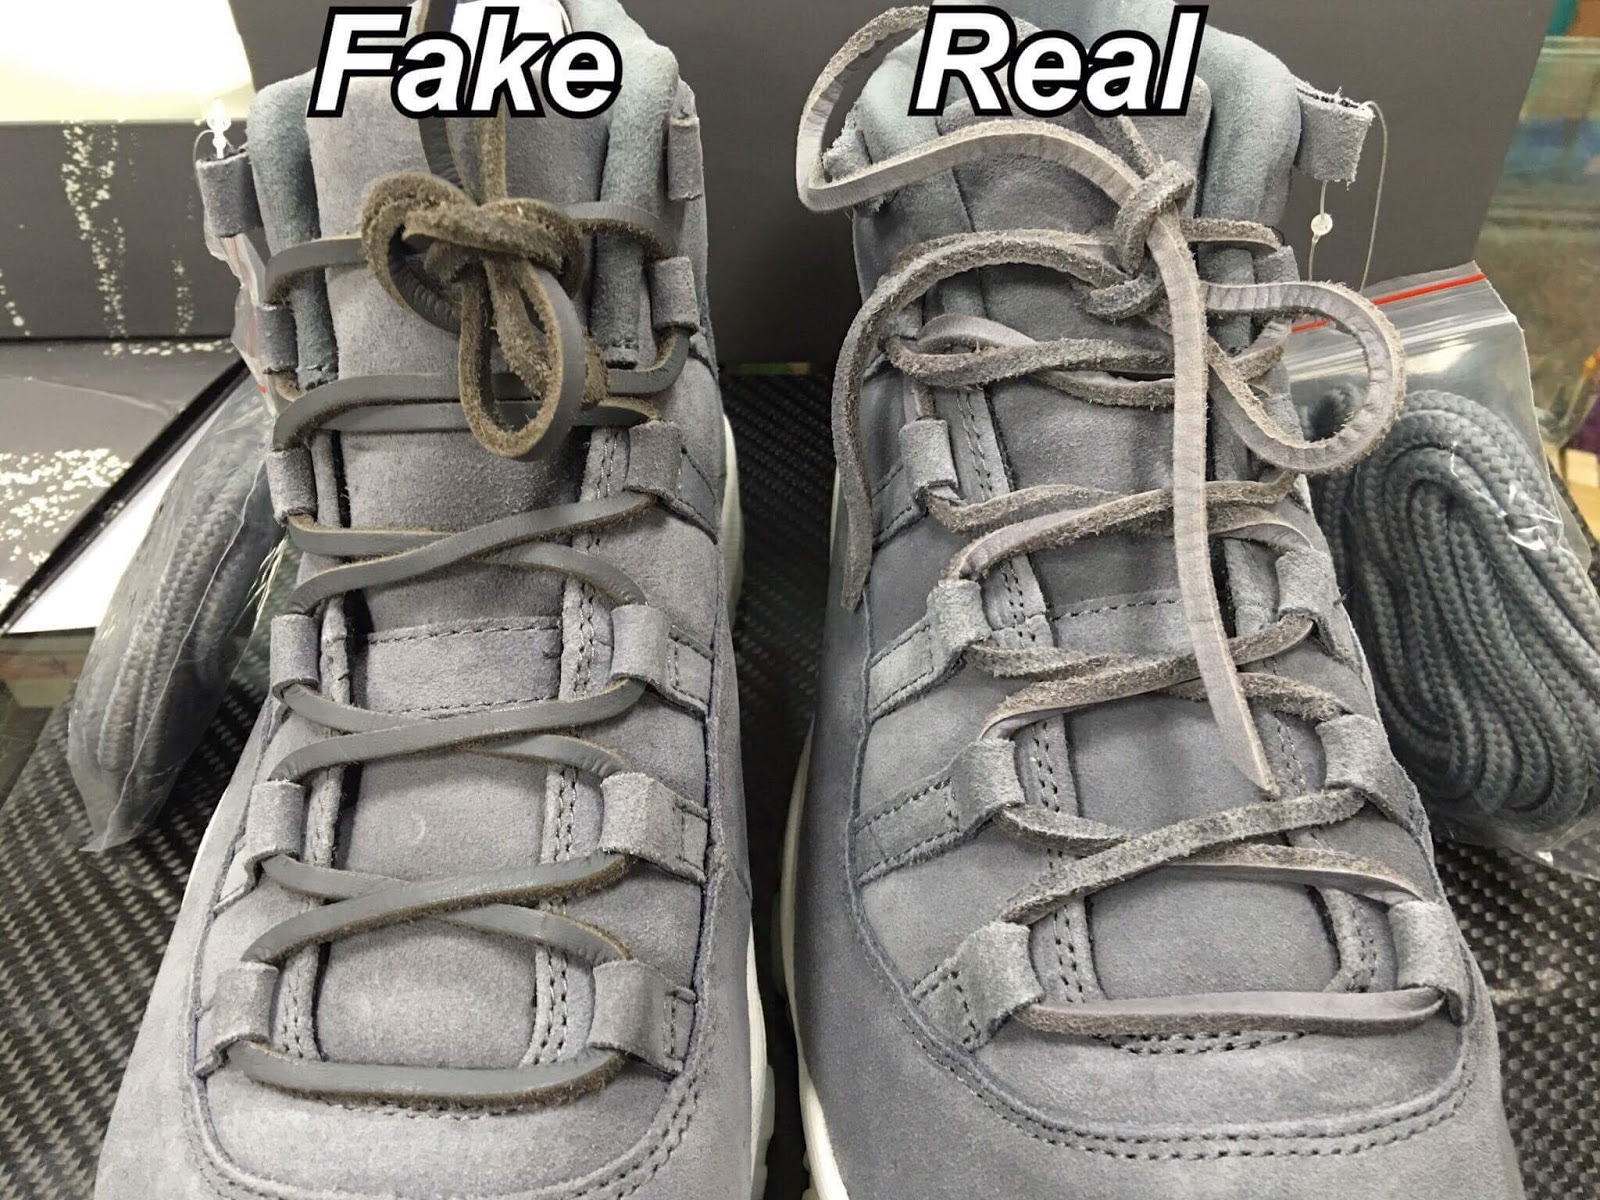 73486e39612a58 Sean s Blog  Real vs Fake AIR JORDAN 11 RETRO PREM